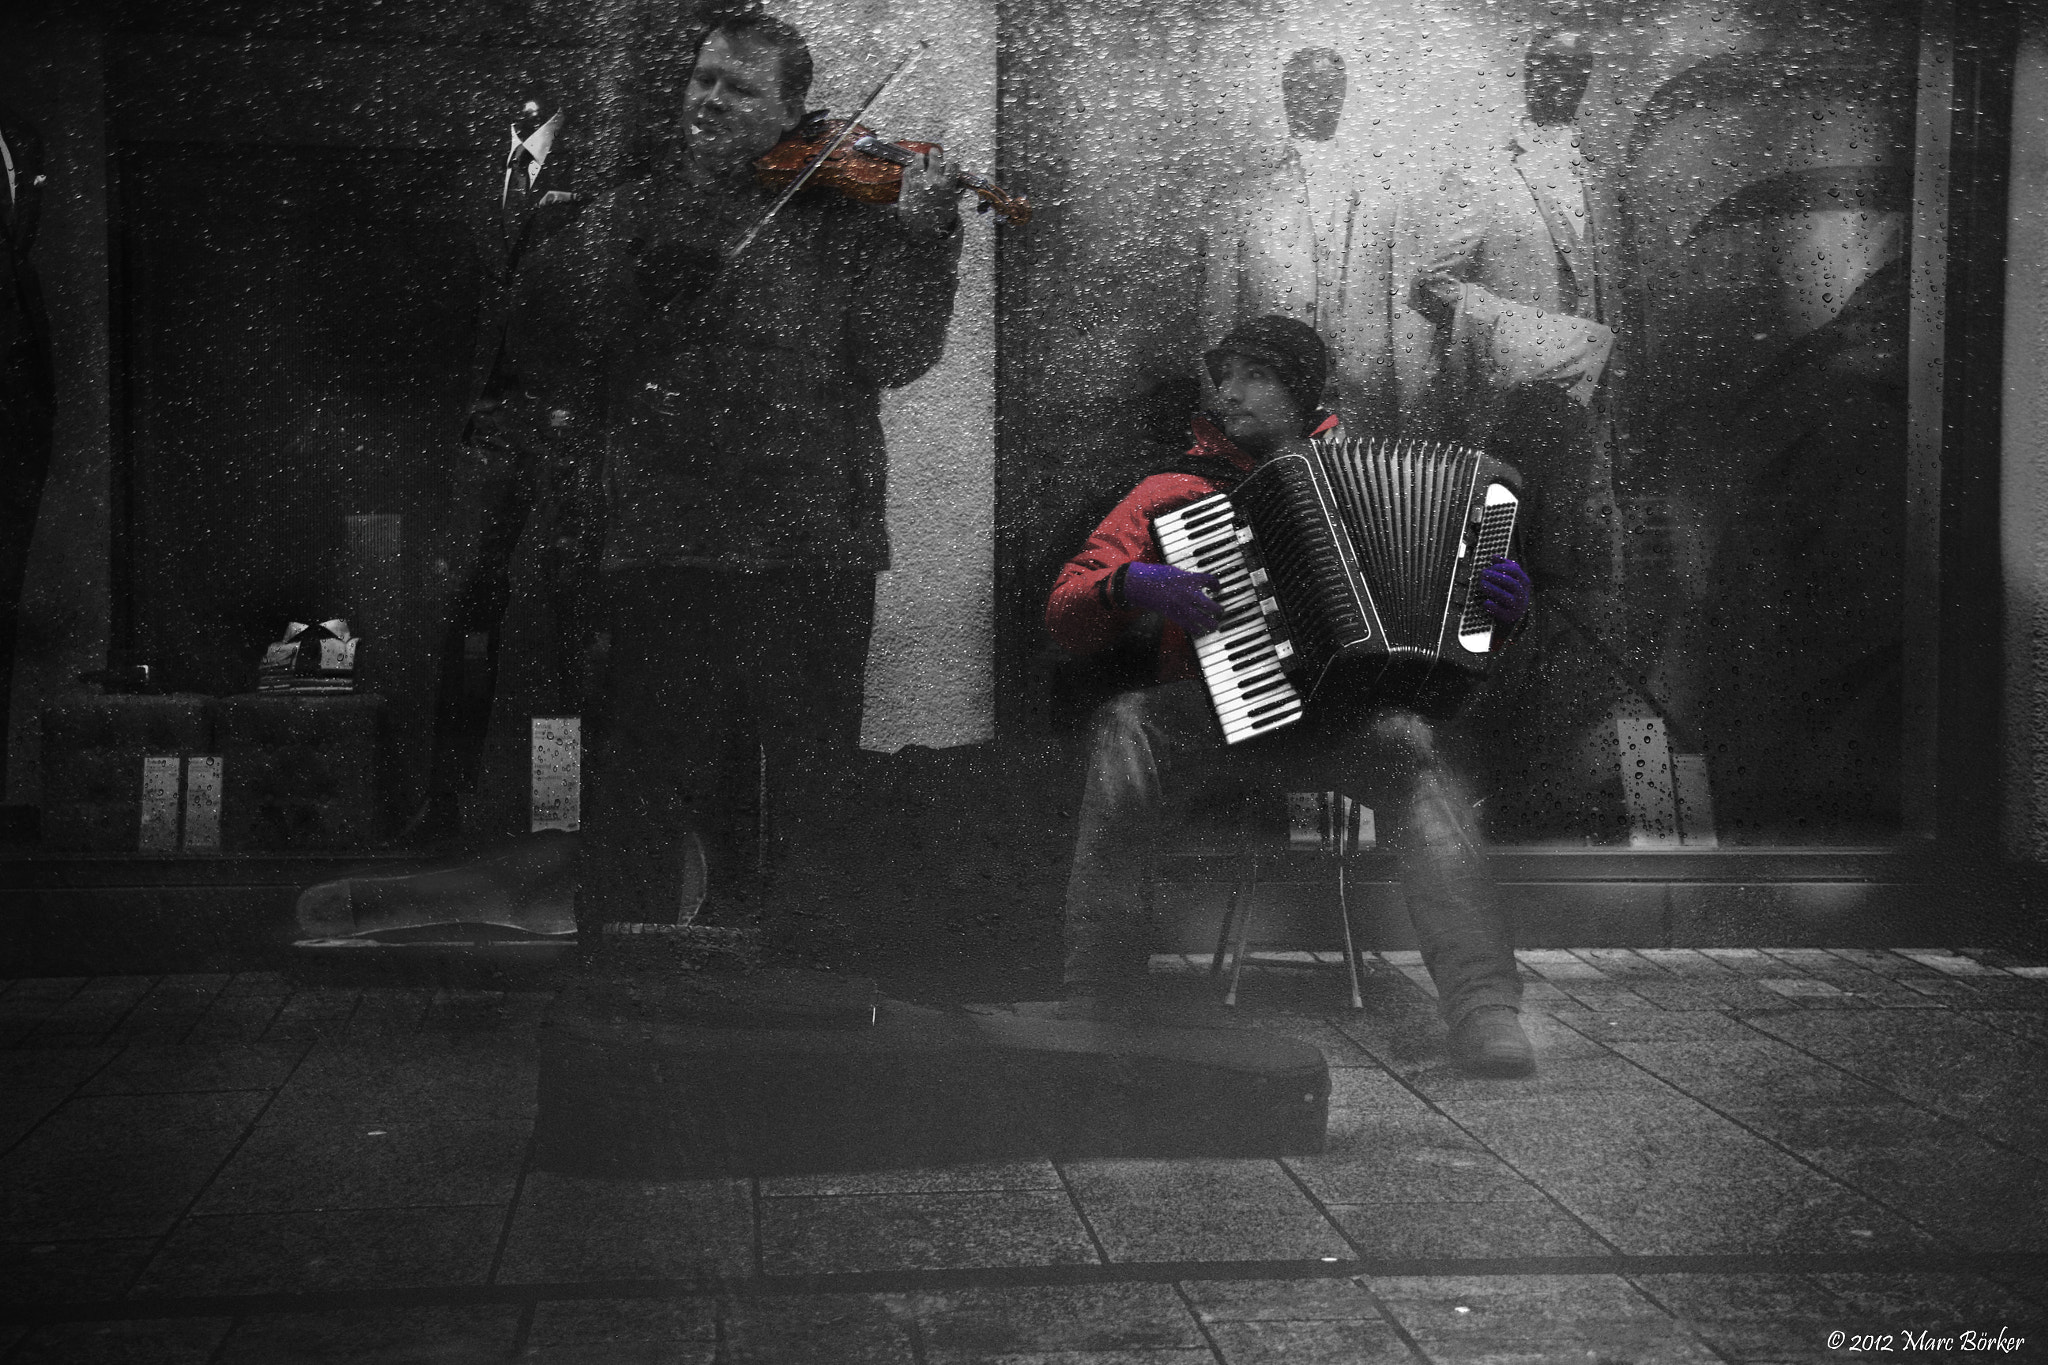 Photograph ** Playing in the rain ** by Nolimit Studios on 500px